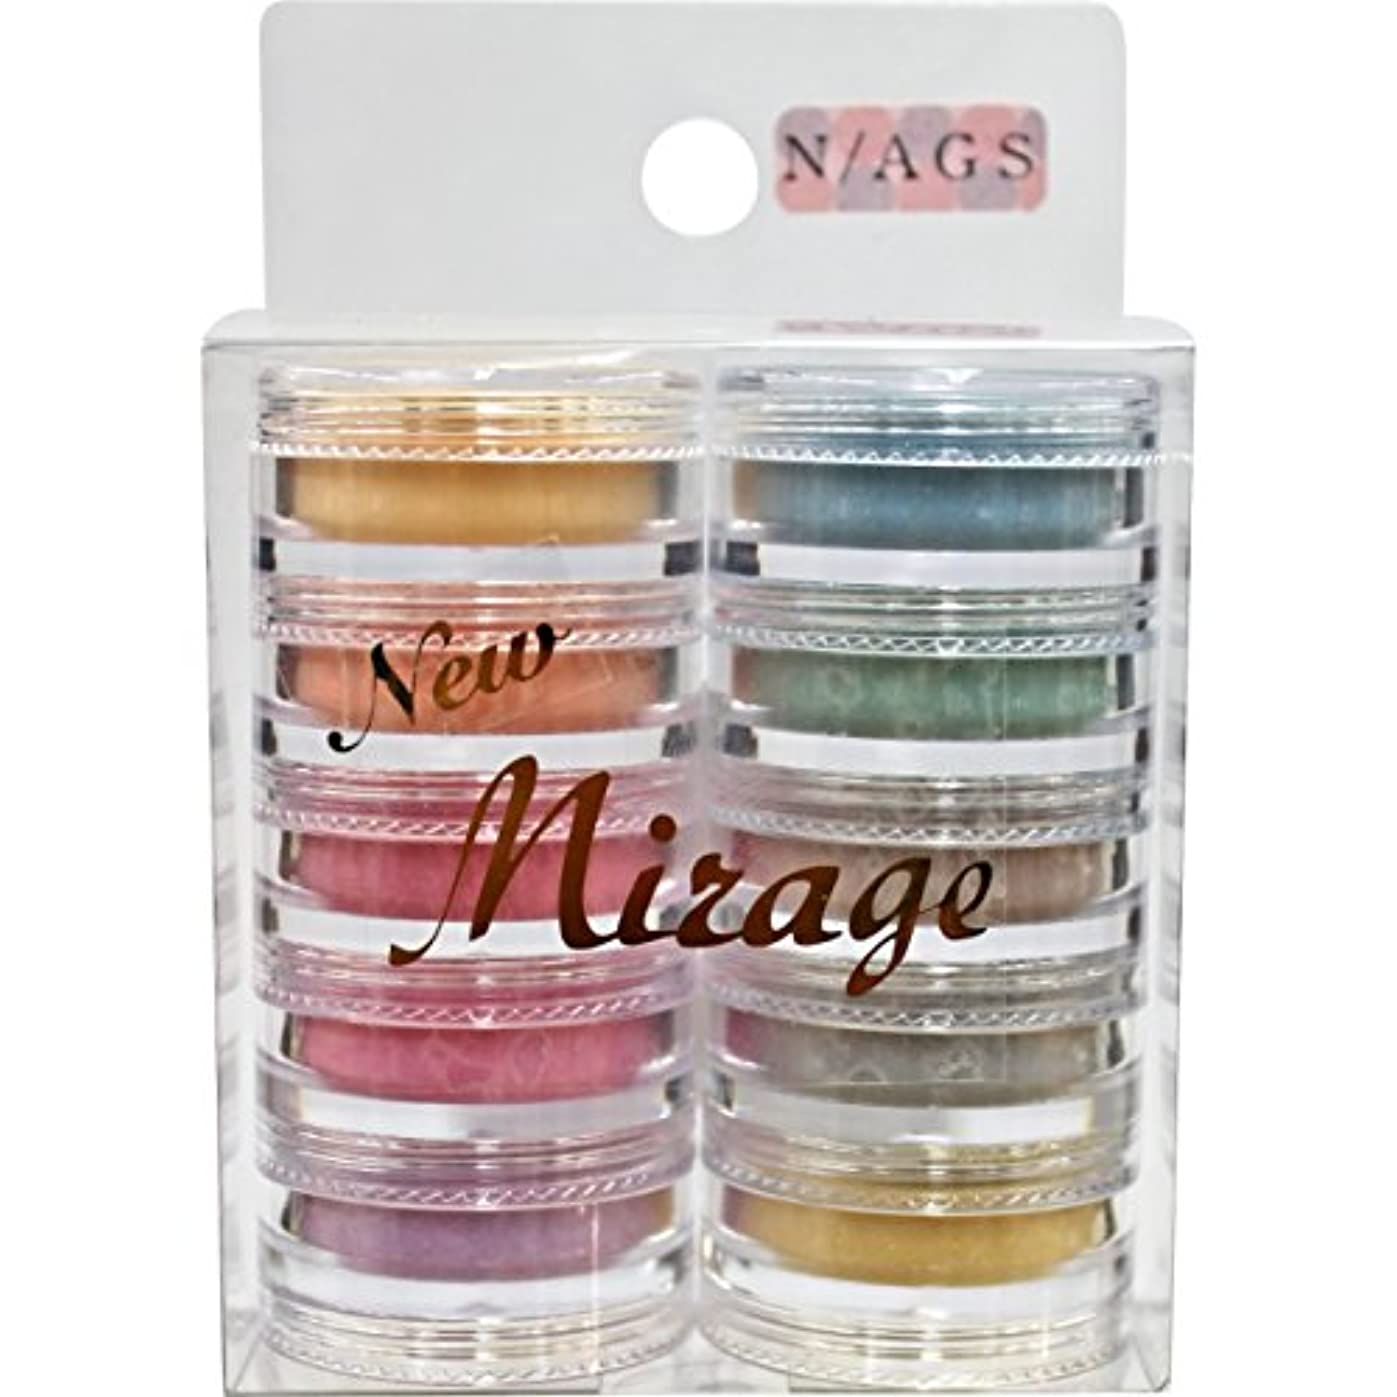 Mirage パウダー10色セット N/AGS 3.5g アクリル材